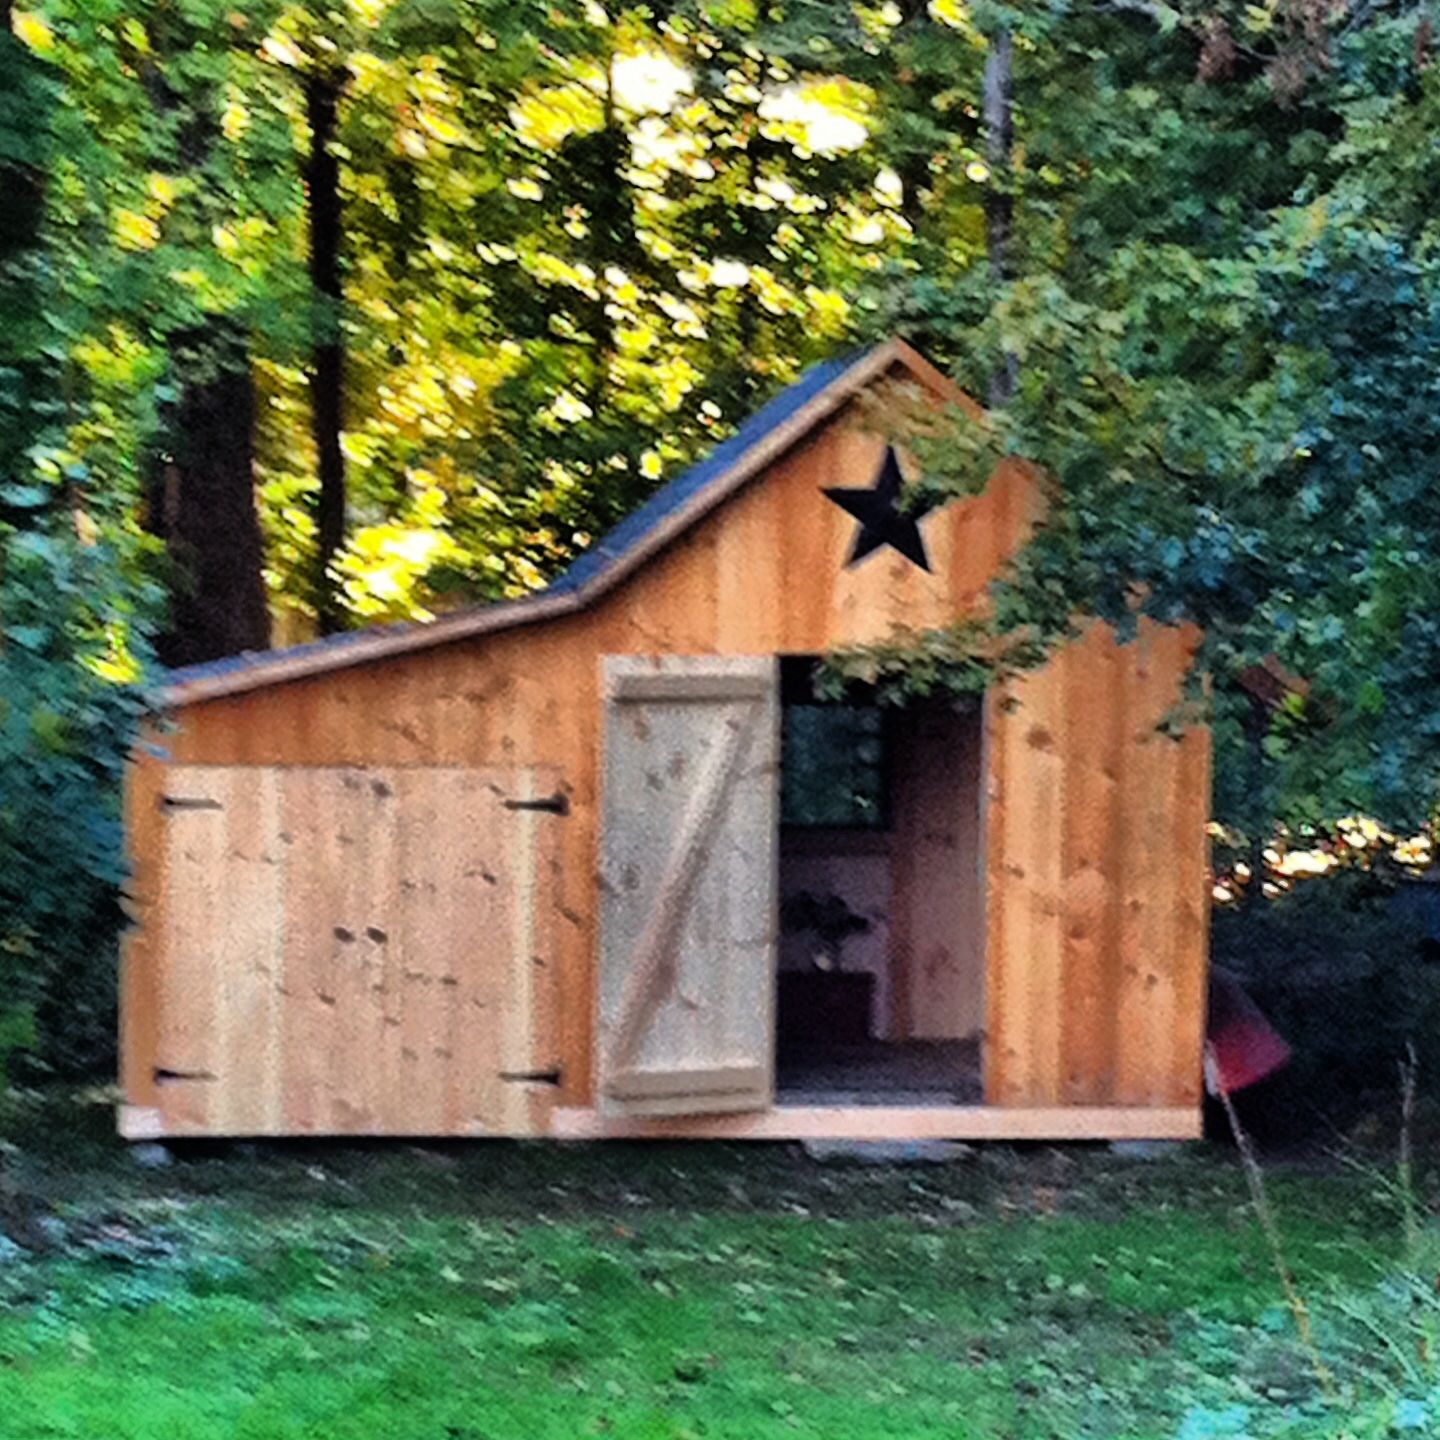 Timber Frame Barn Backyard Projects Barn That Functions As Office Retreat Quiet Nook Creative Spot Timber Frame Barn Rustic Barn Backyard Projects